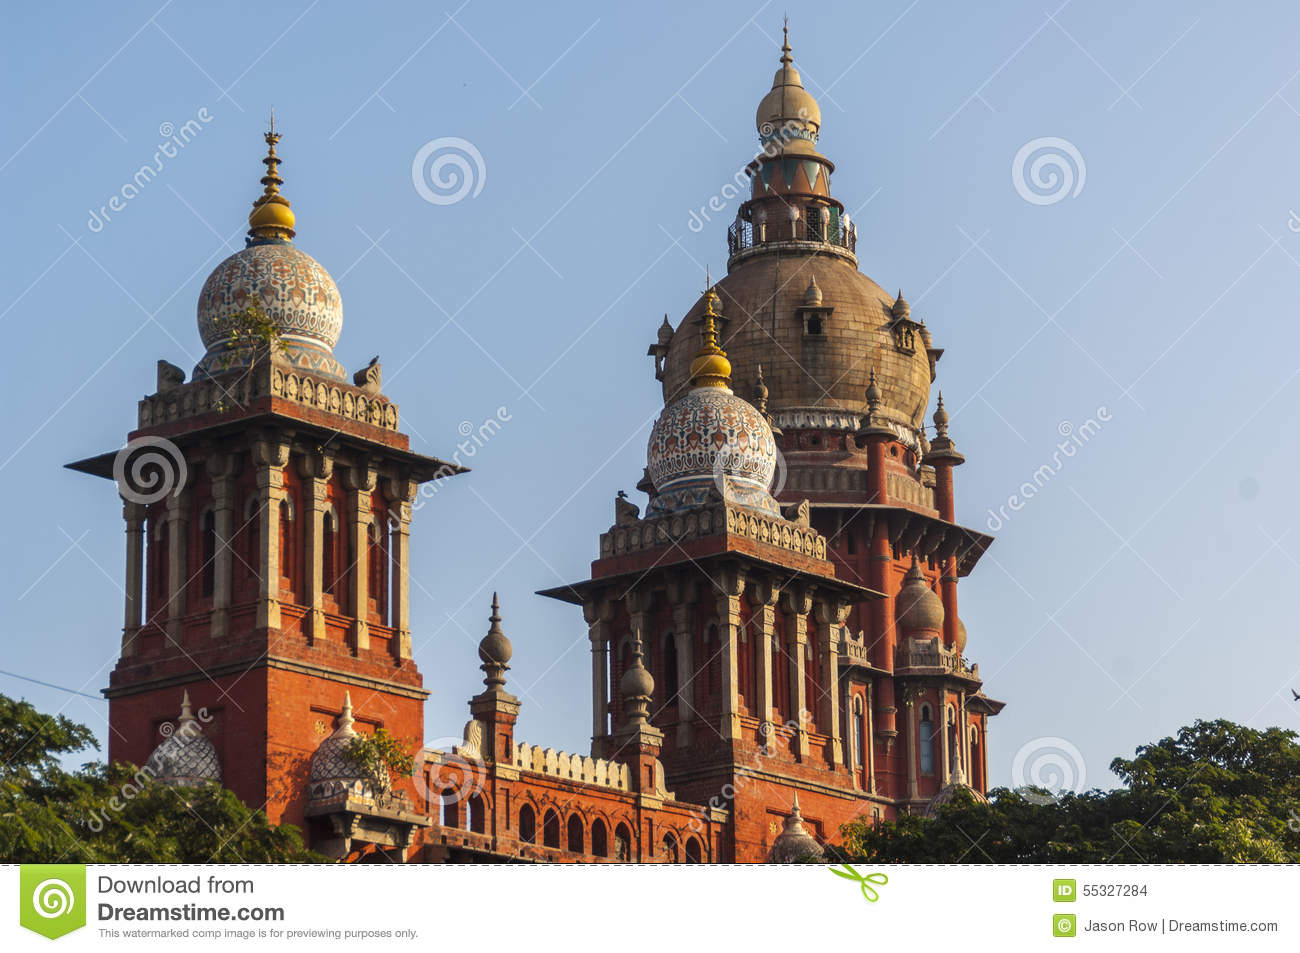 Towers And Domes Of The High Court In Chennai, Stock Photo.